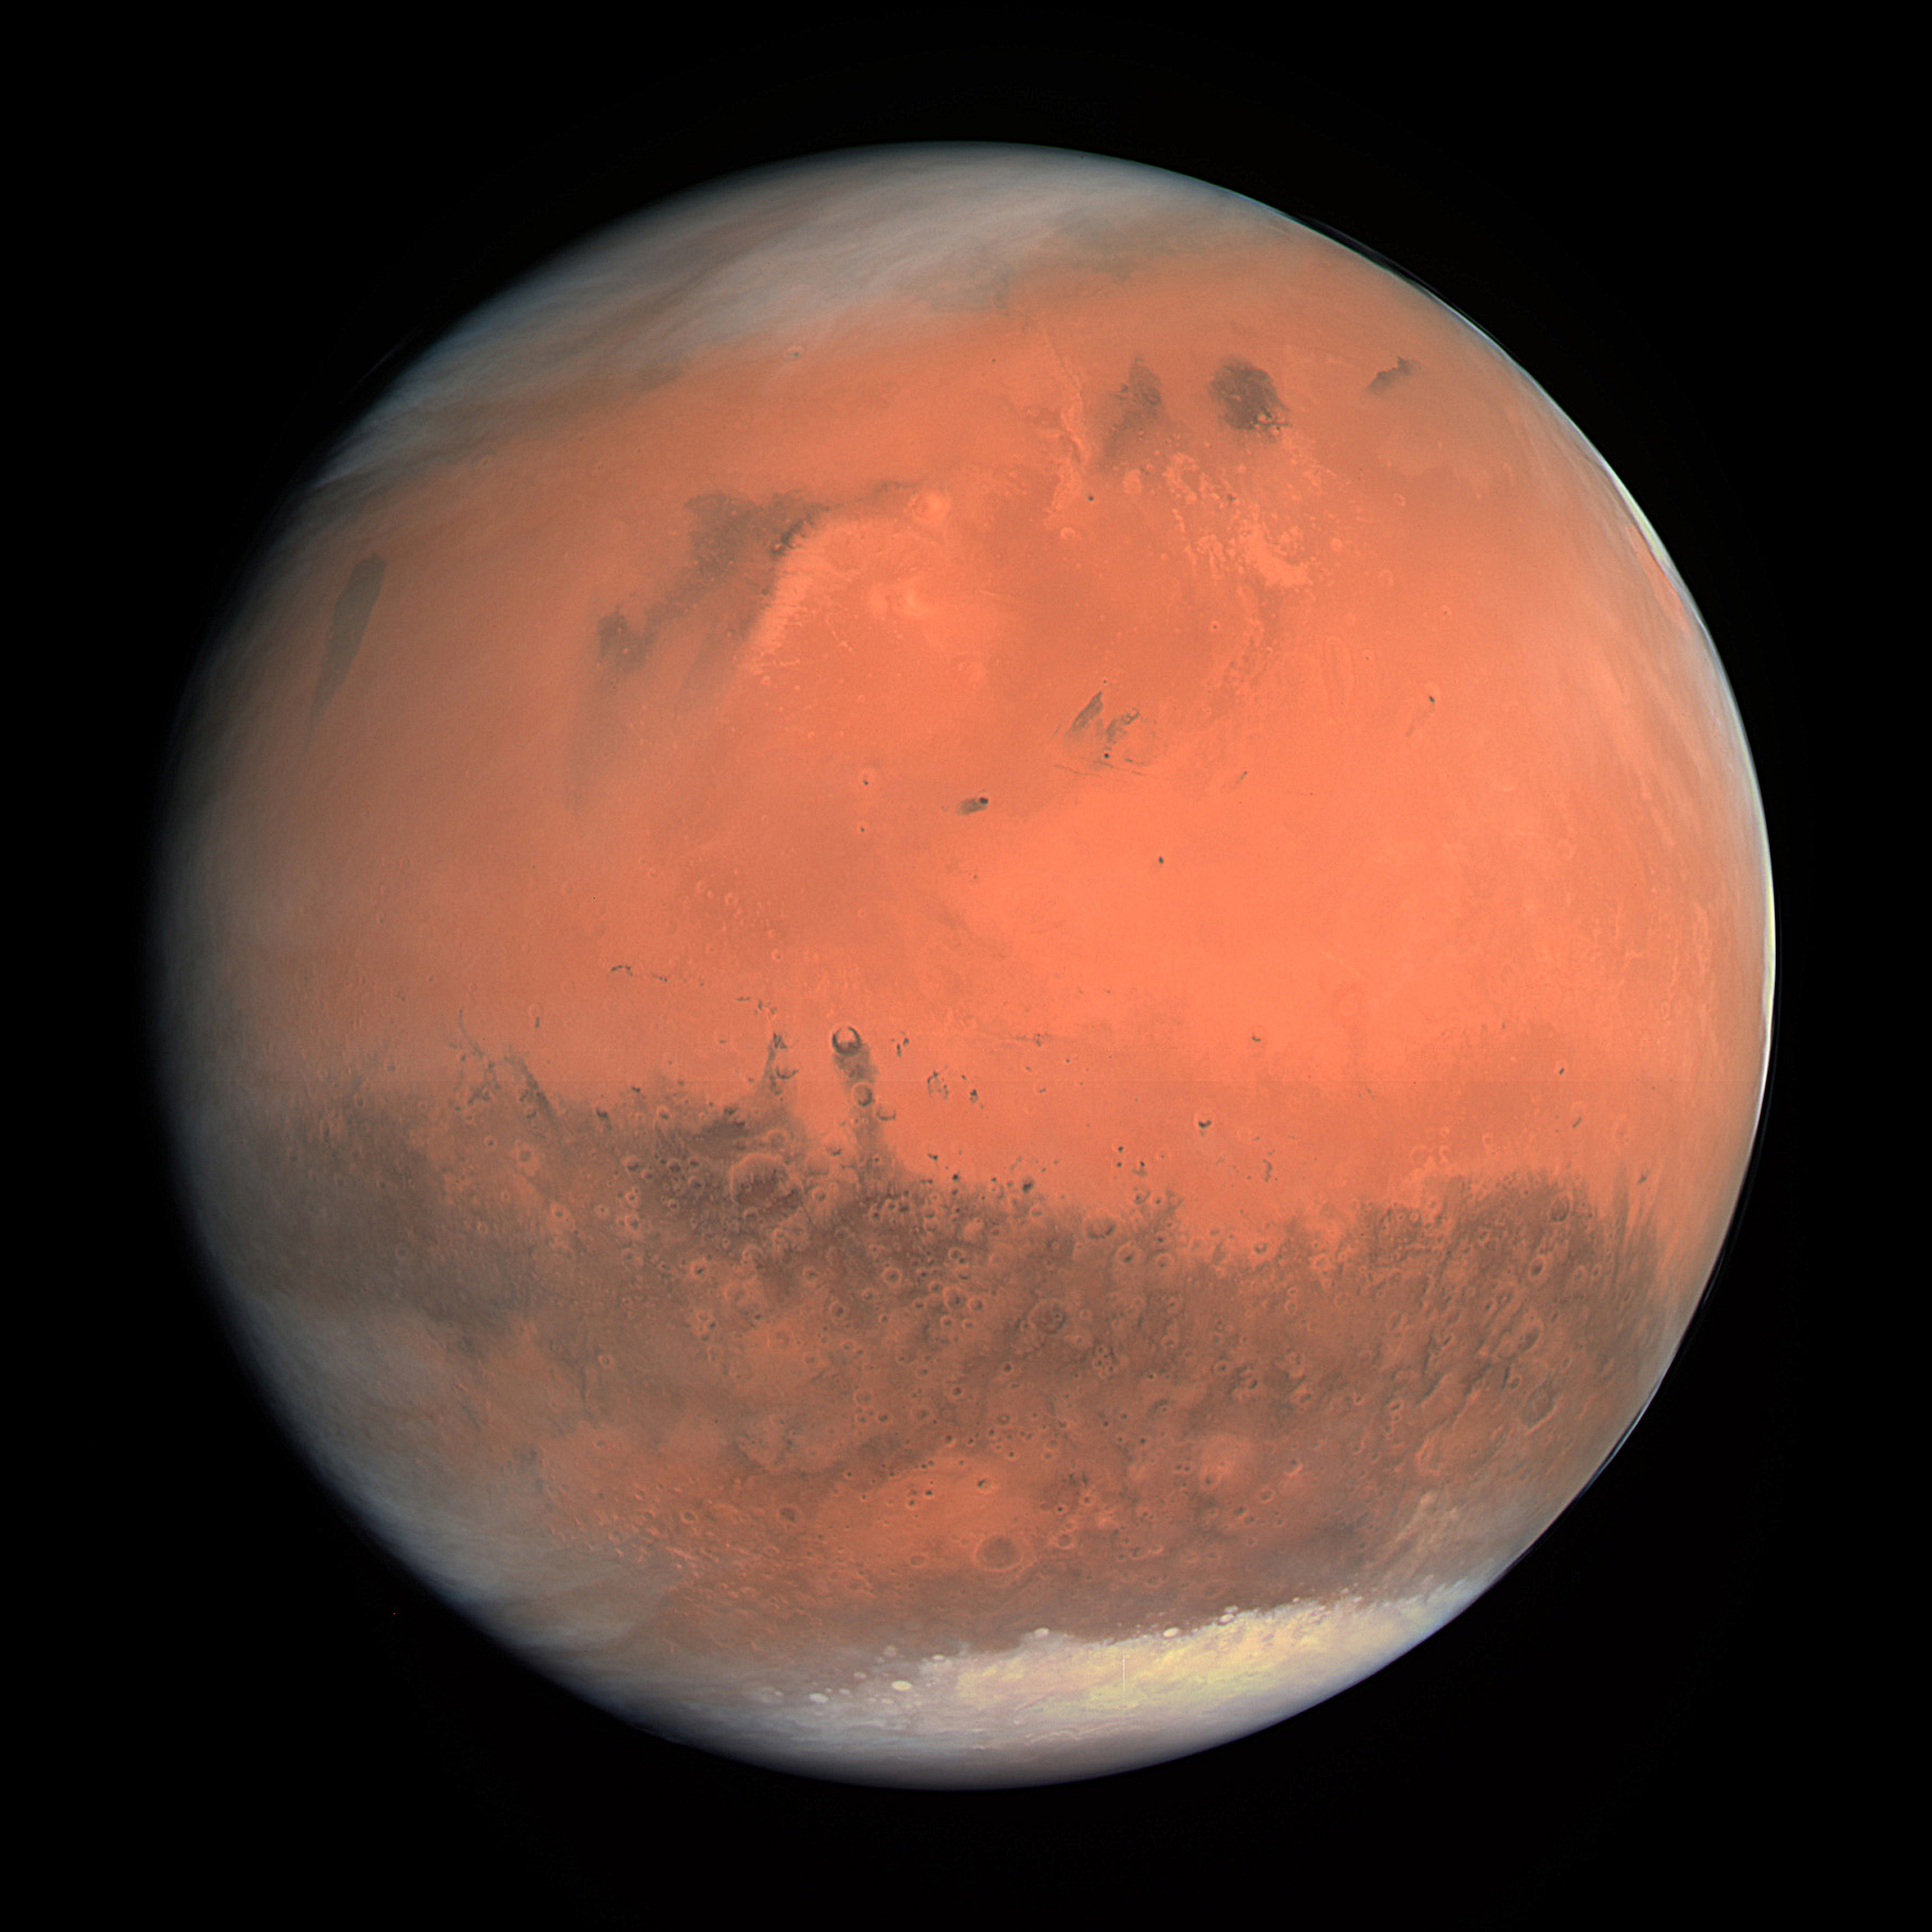 Mars Appears As A Red Orange Globe With Darker Blotches And White Icecaps Visible On